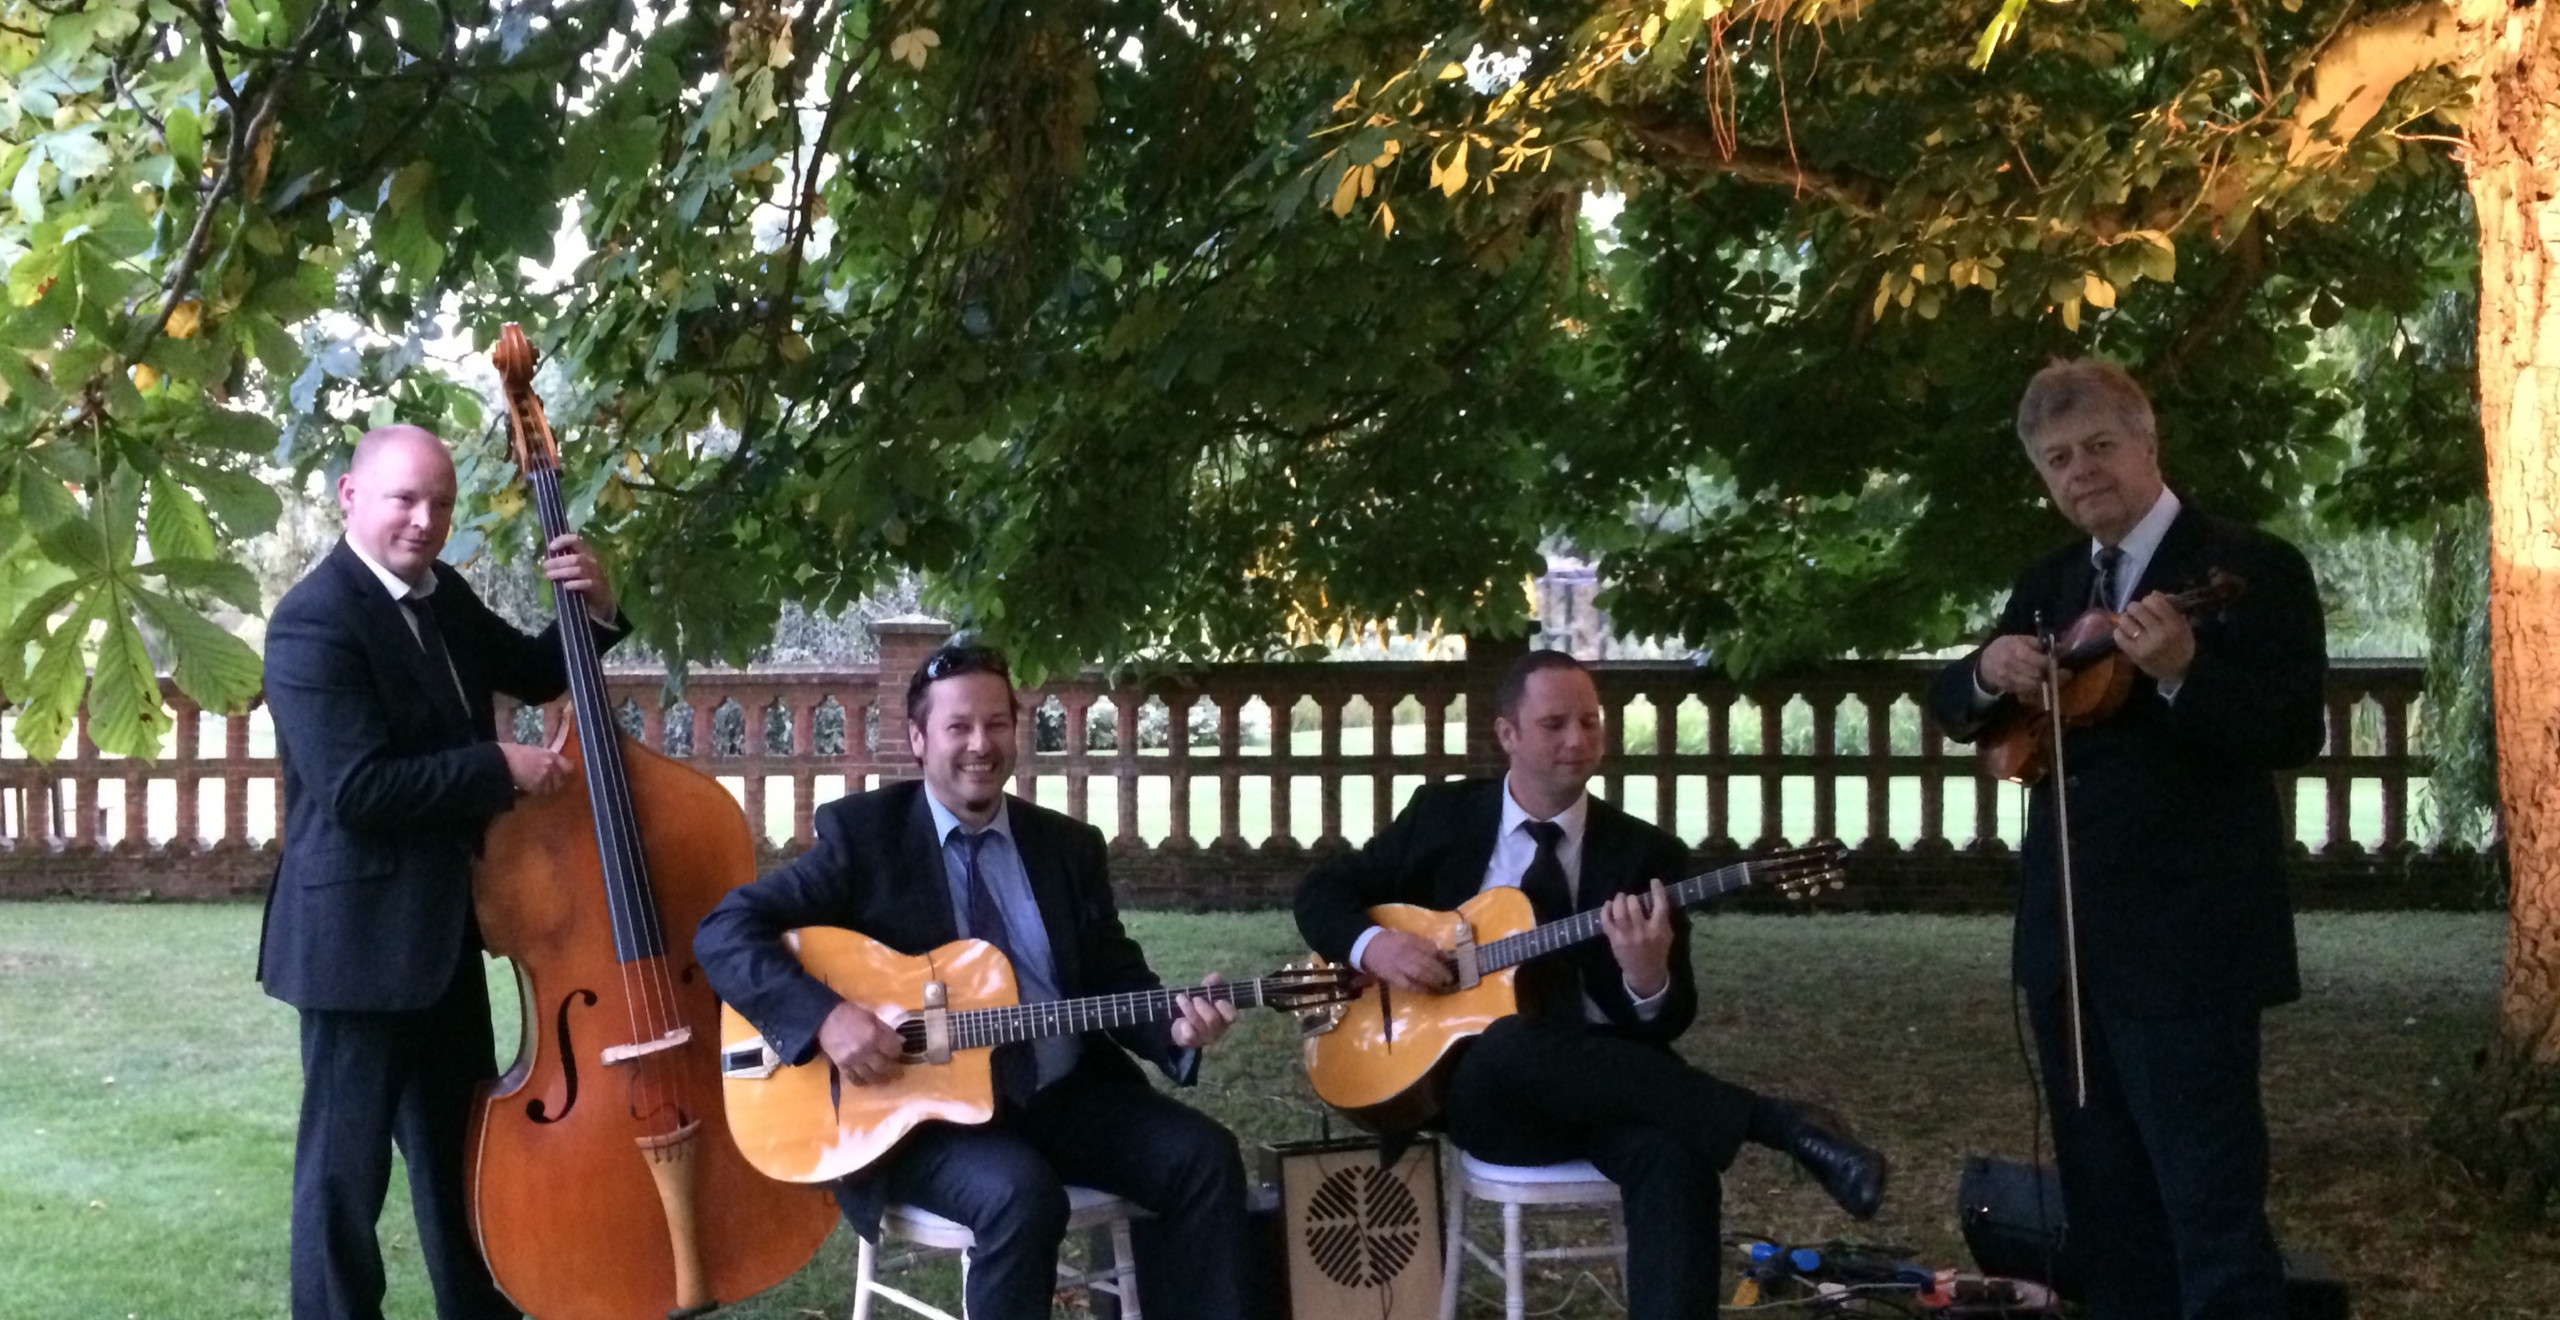 Hire The Jonny Hepbir Acoustic Jazz Band In Royal Tunbridge Wells, Kent